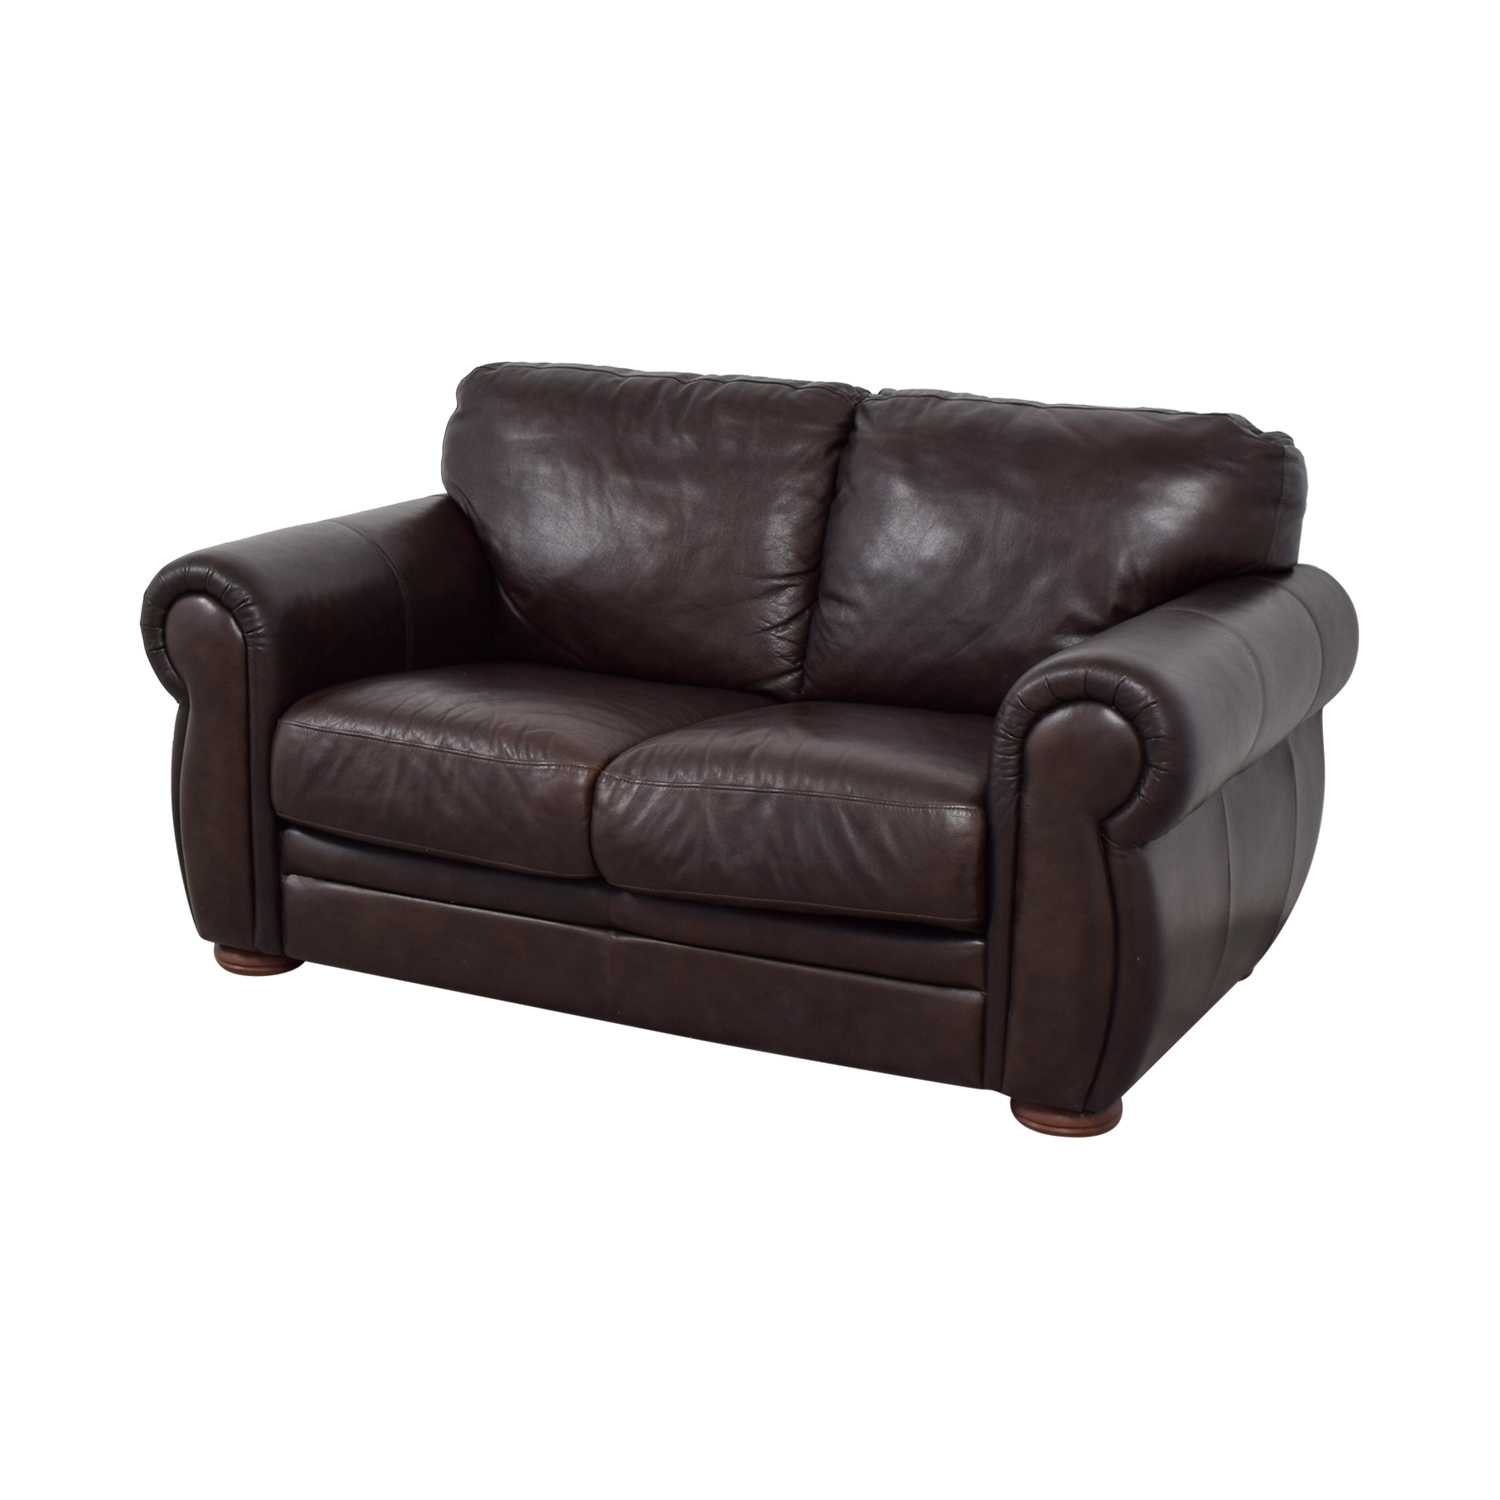 Raymour & Flanigan Raymour & Flanigan Brown Leather Two-Cushion Sofa on sale